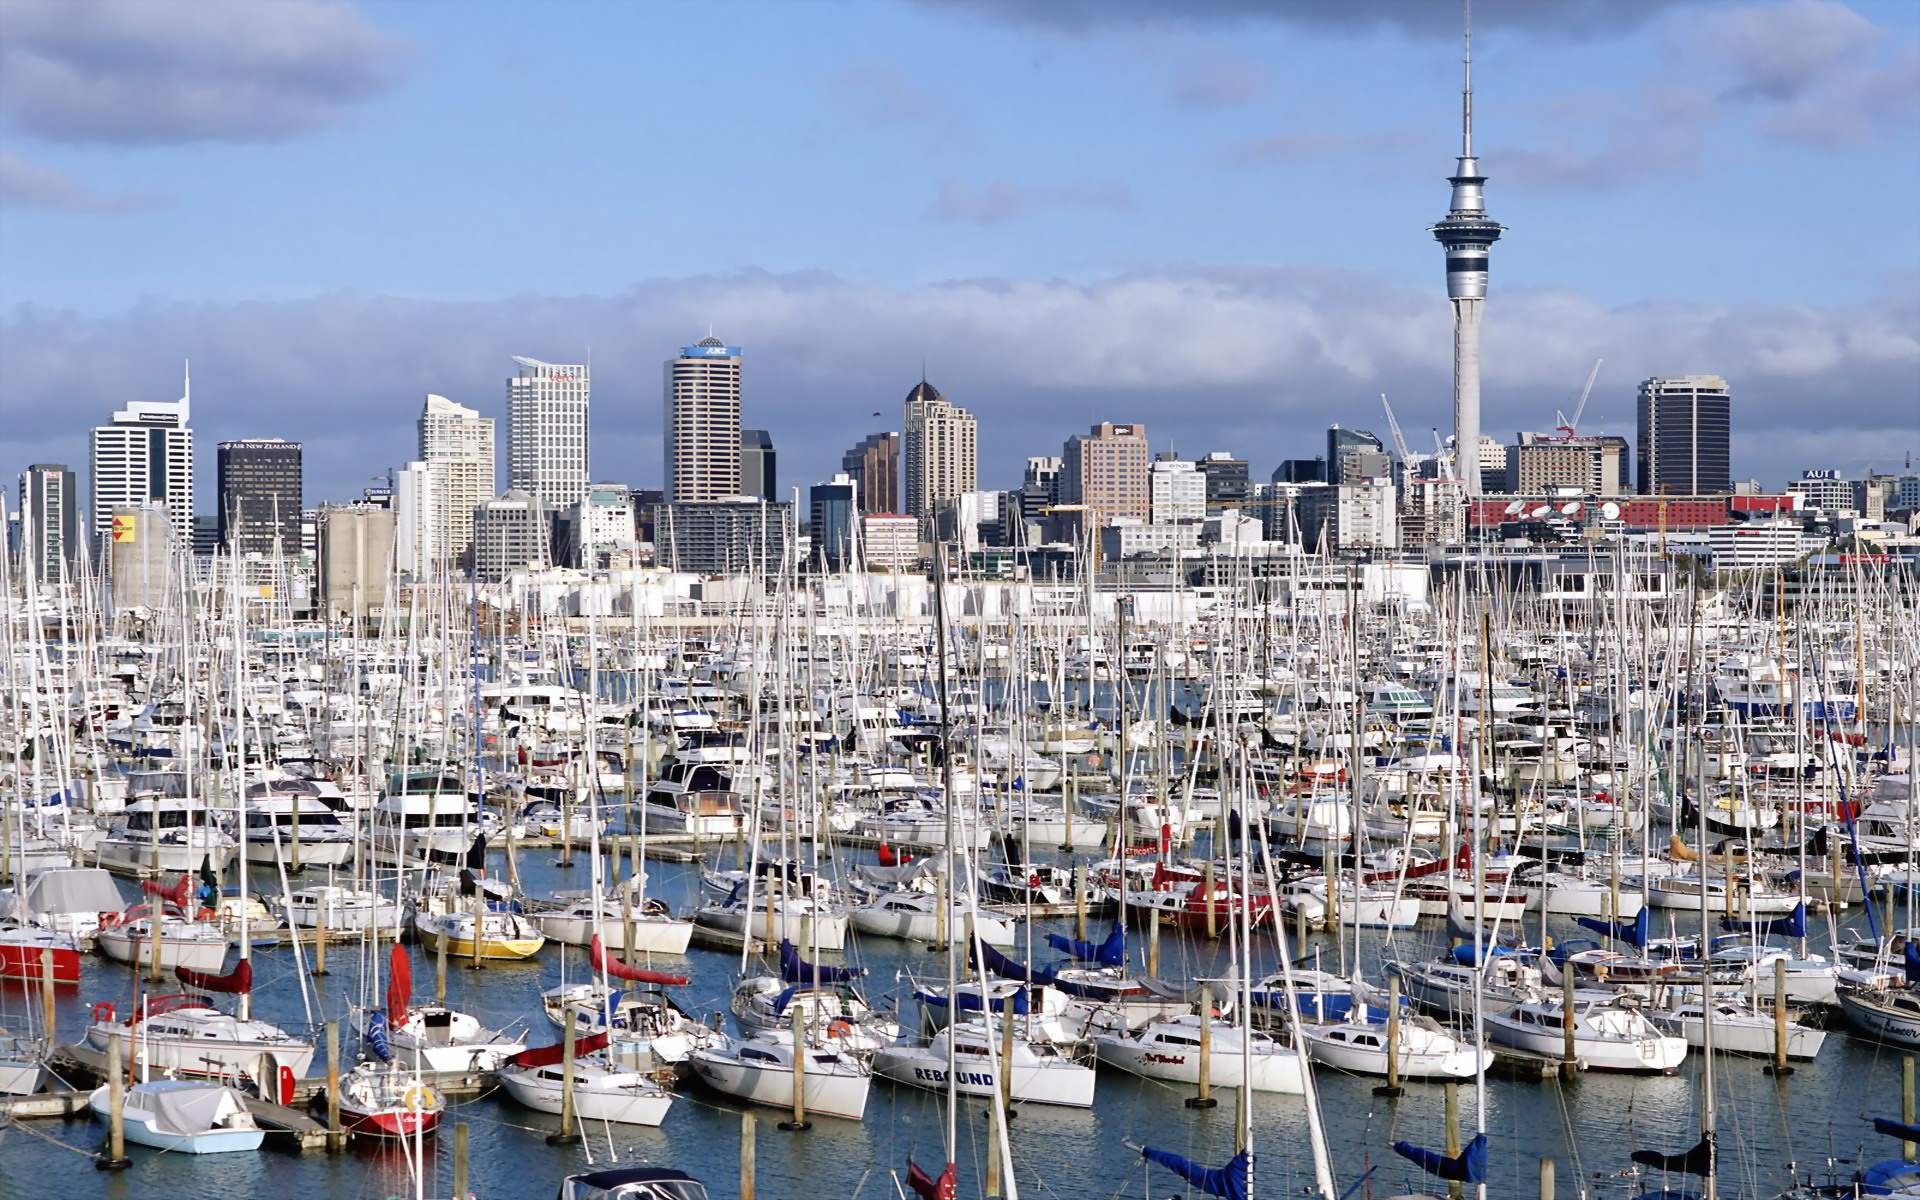 Westhaven Marina Auckland North Island New Zealand